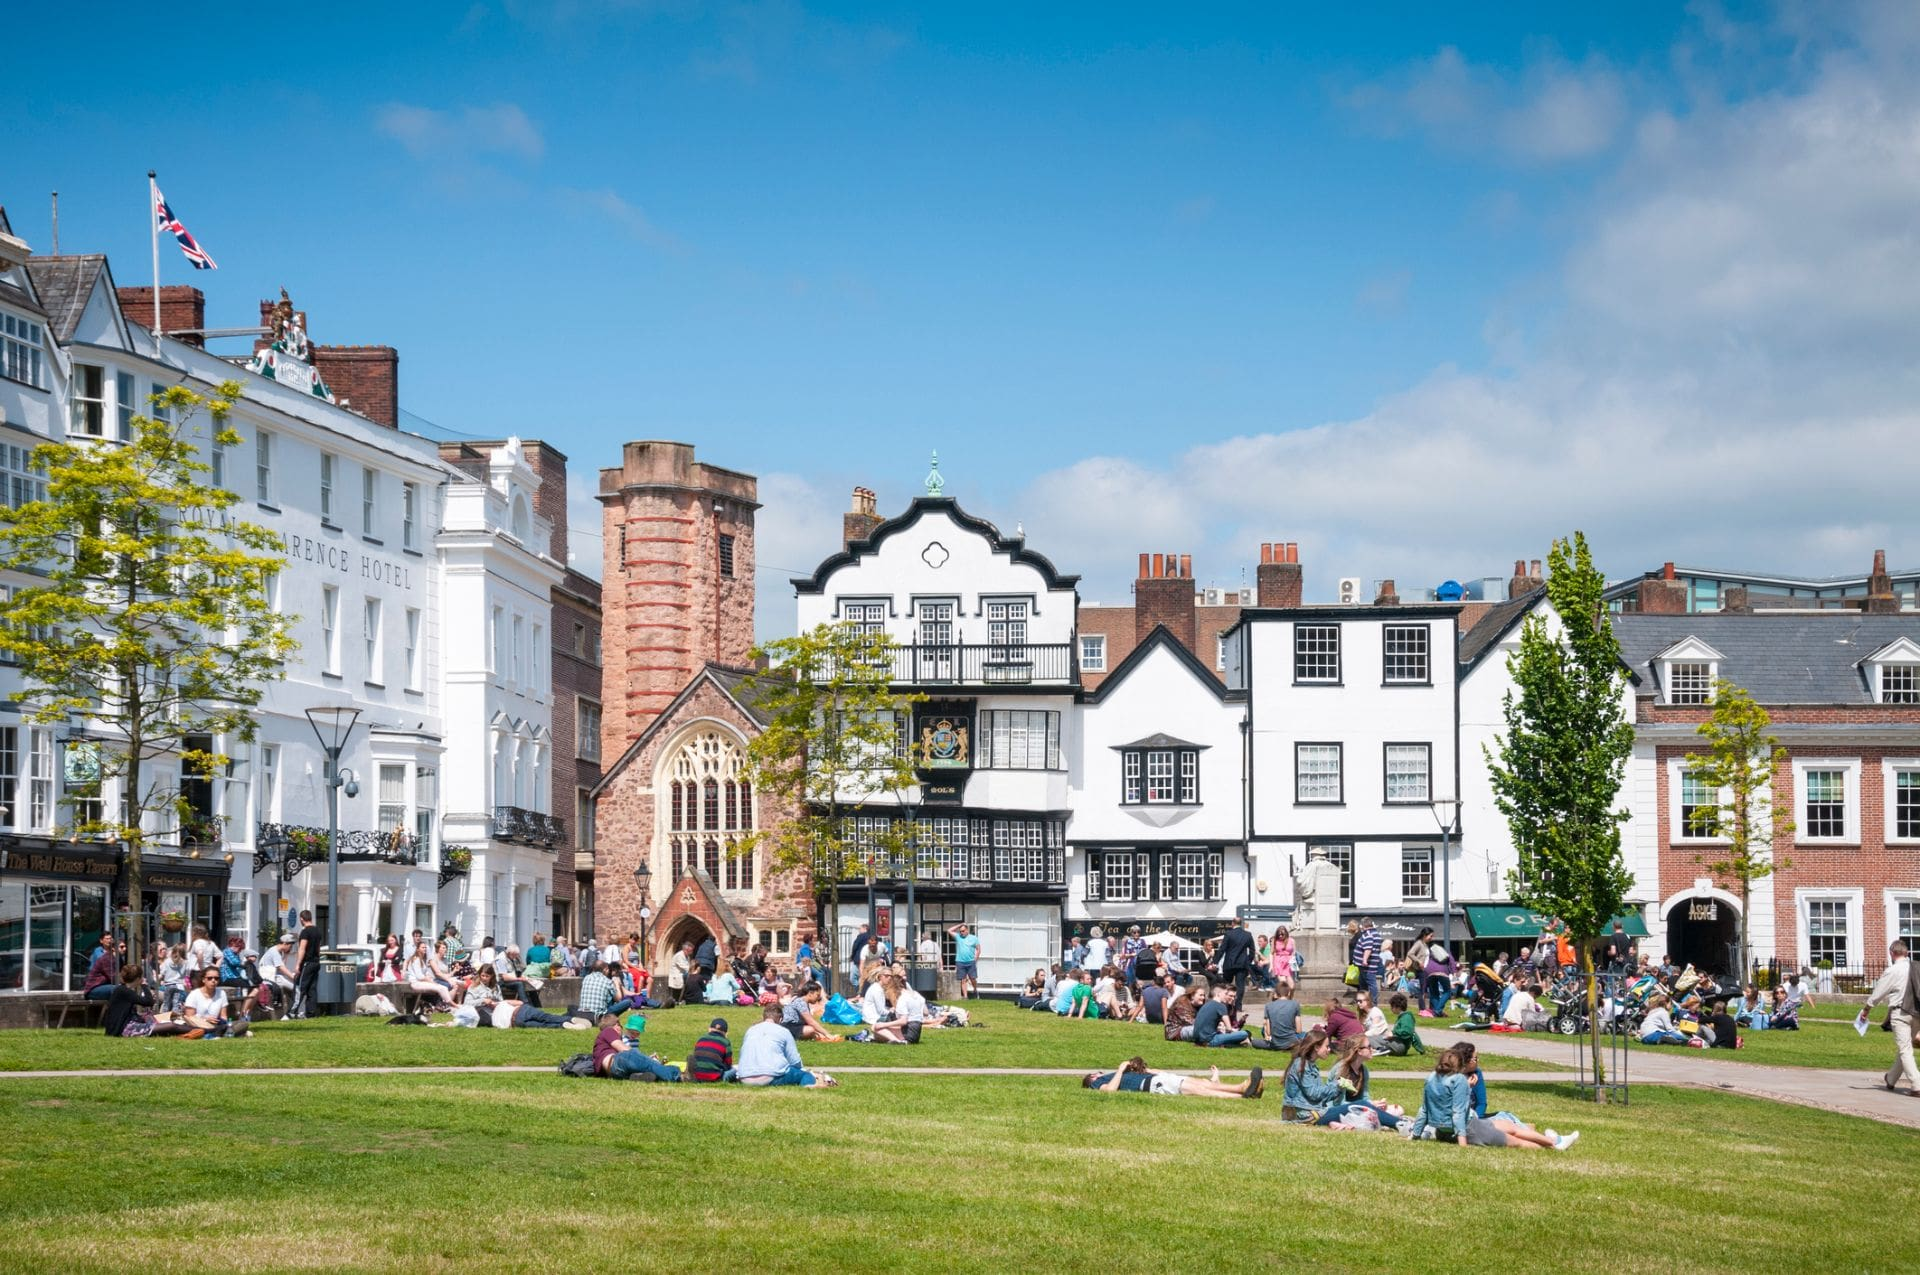 people-laying-on-grass-in-city-centre-in-front-of-cafes-shops-and-hotels-on-sunny-day-exeter-devon